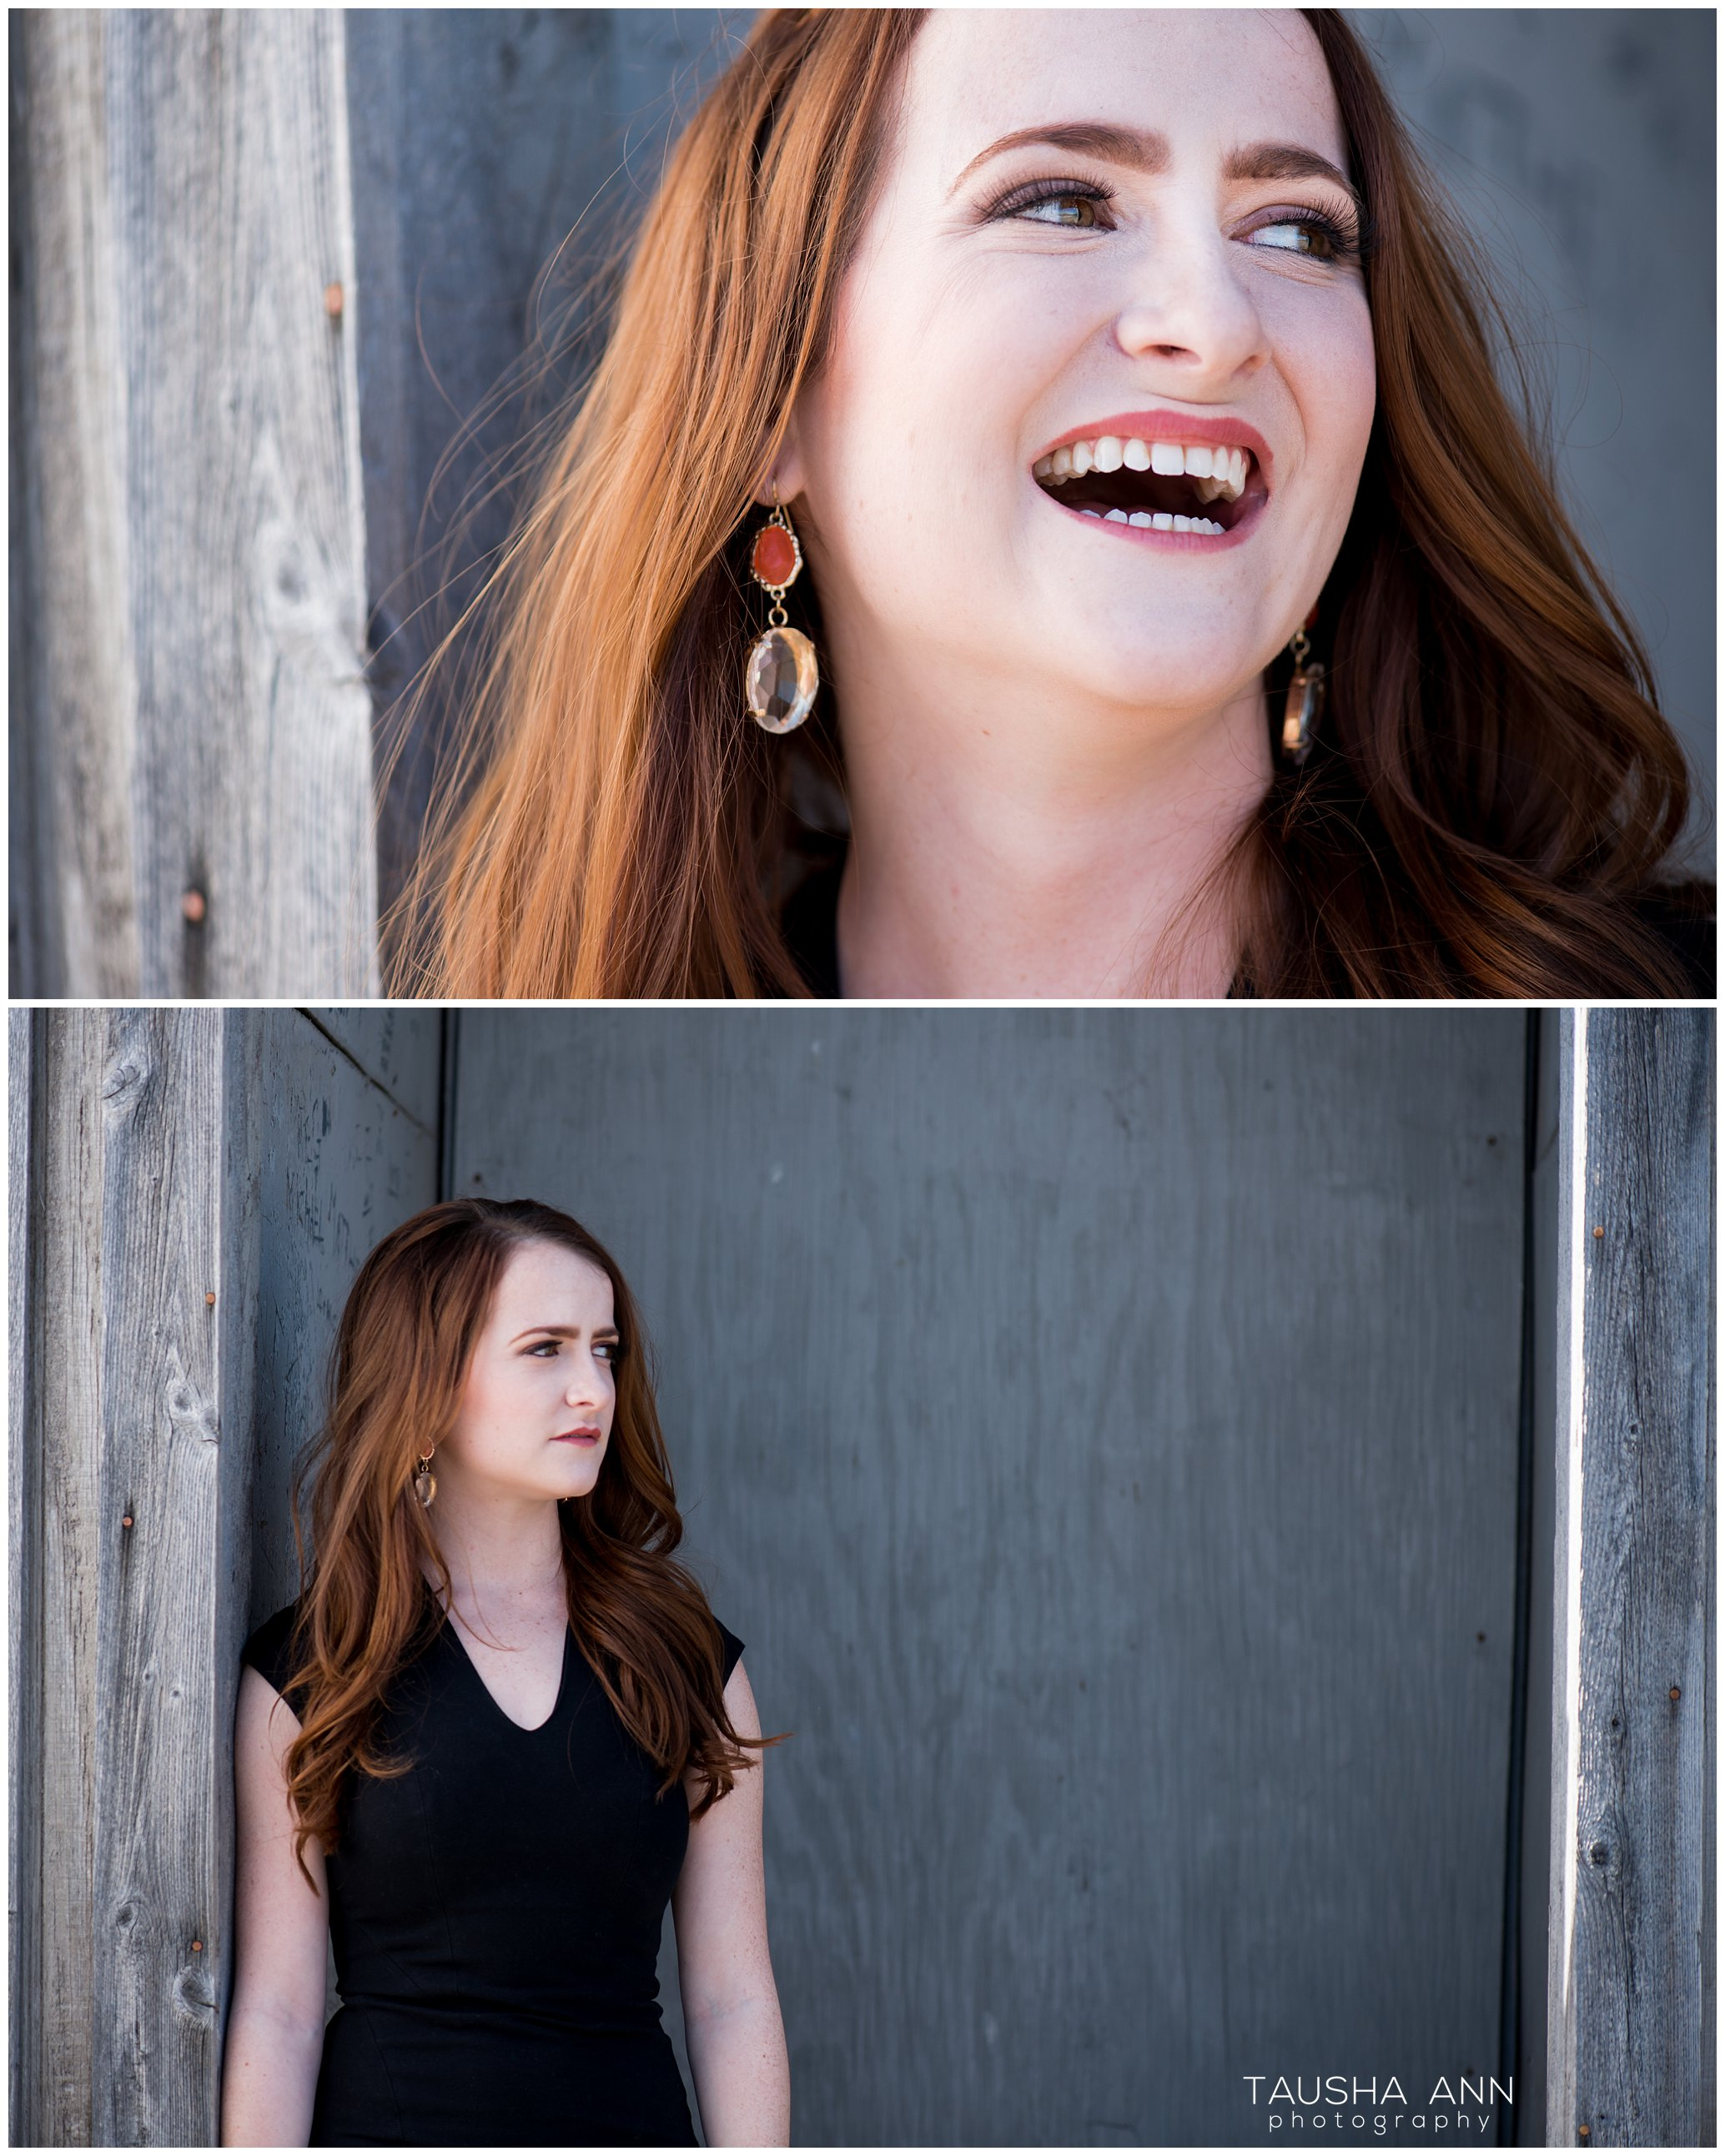 Shannon_Grace_Nashville_TN_FRanklin_Model_Photography_Headshots_3.jpg